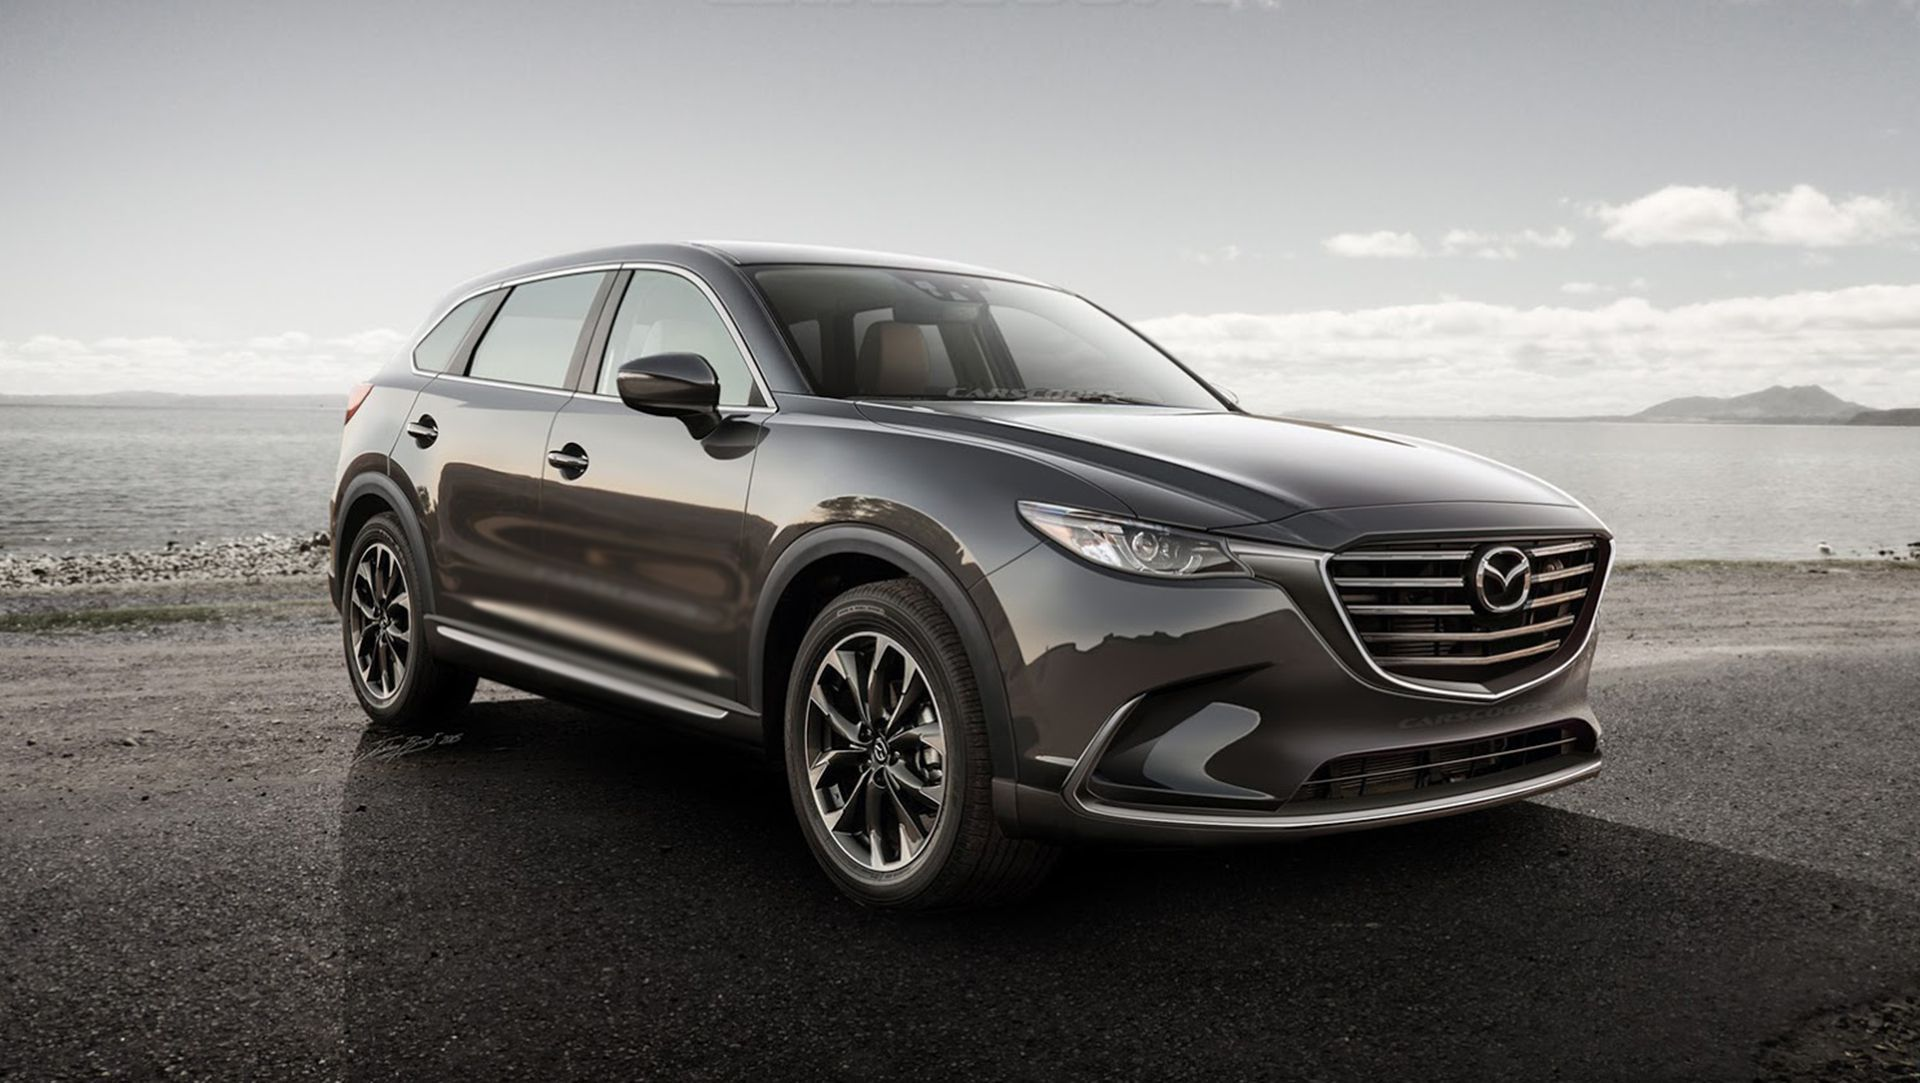 2016 Mazda CX-9 Priced from $31,520 MSRP | Auto Moto | Japan Bullet